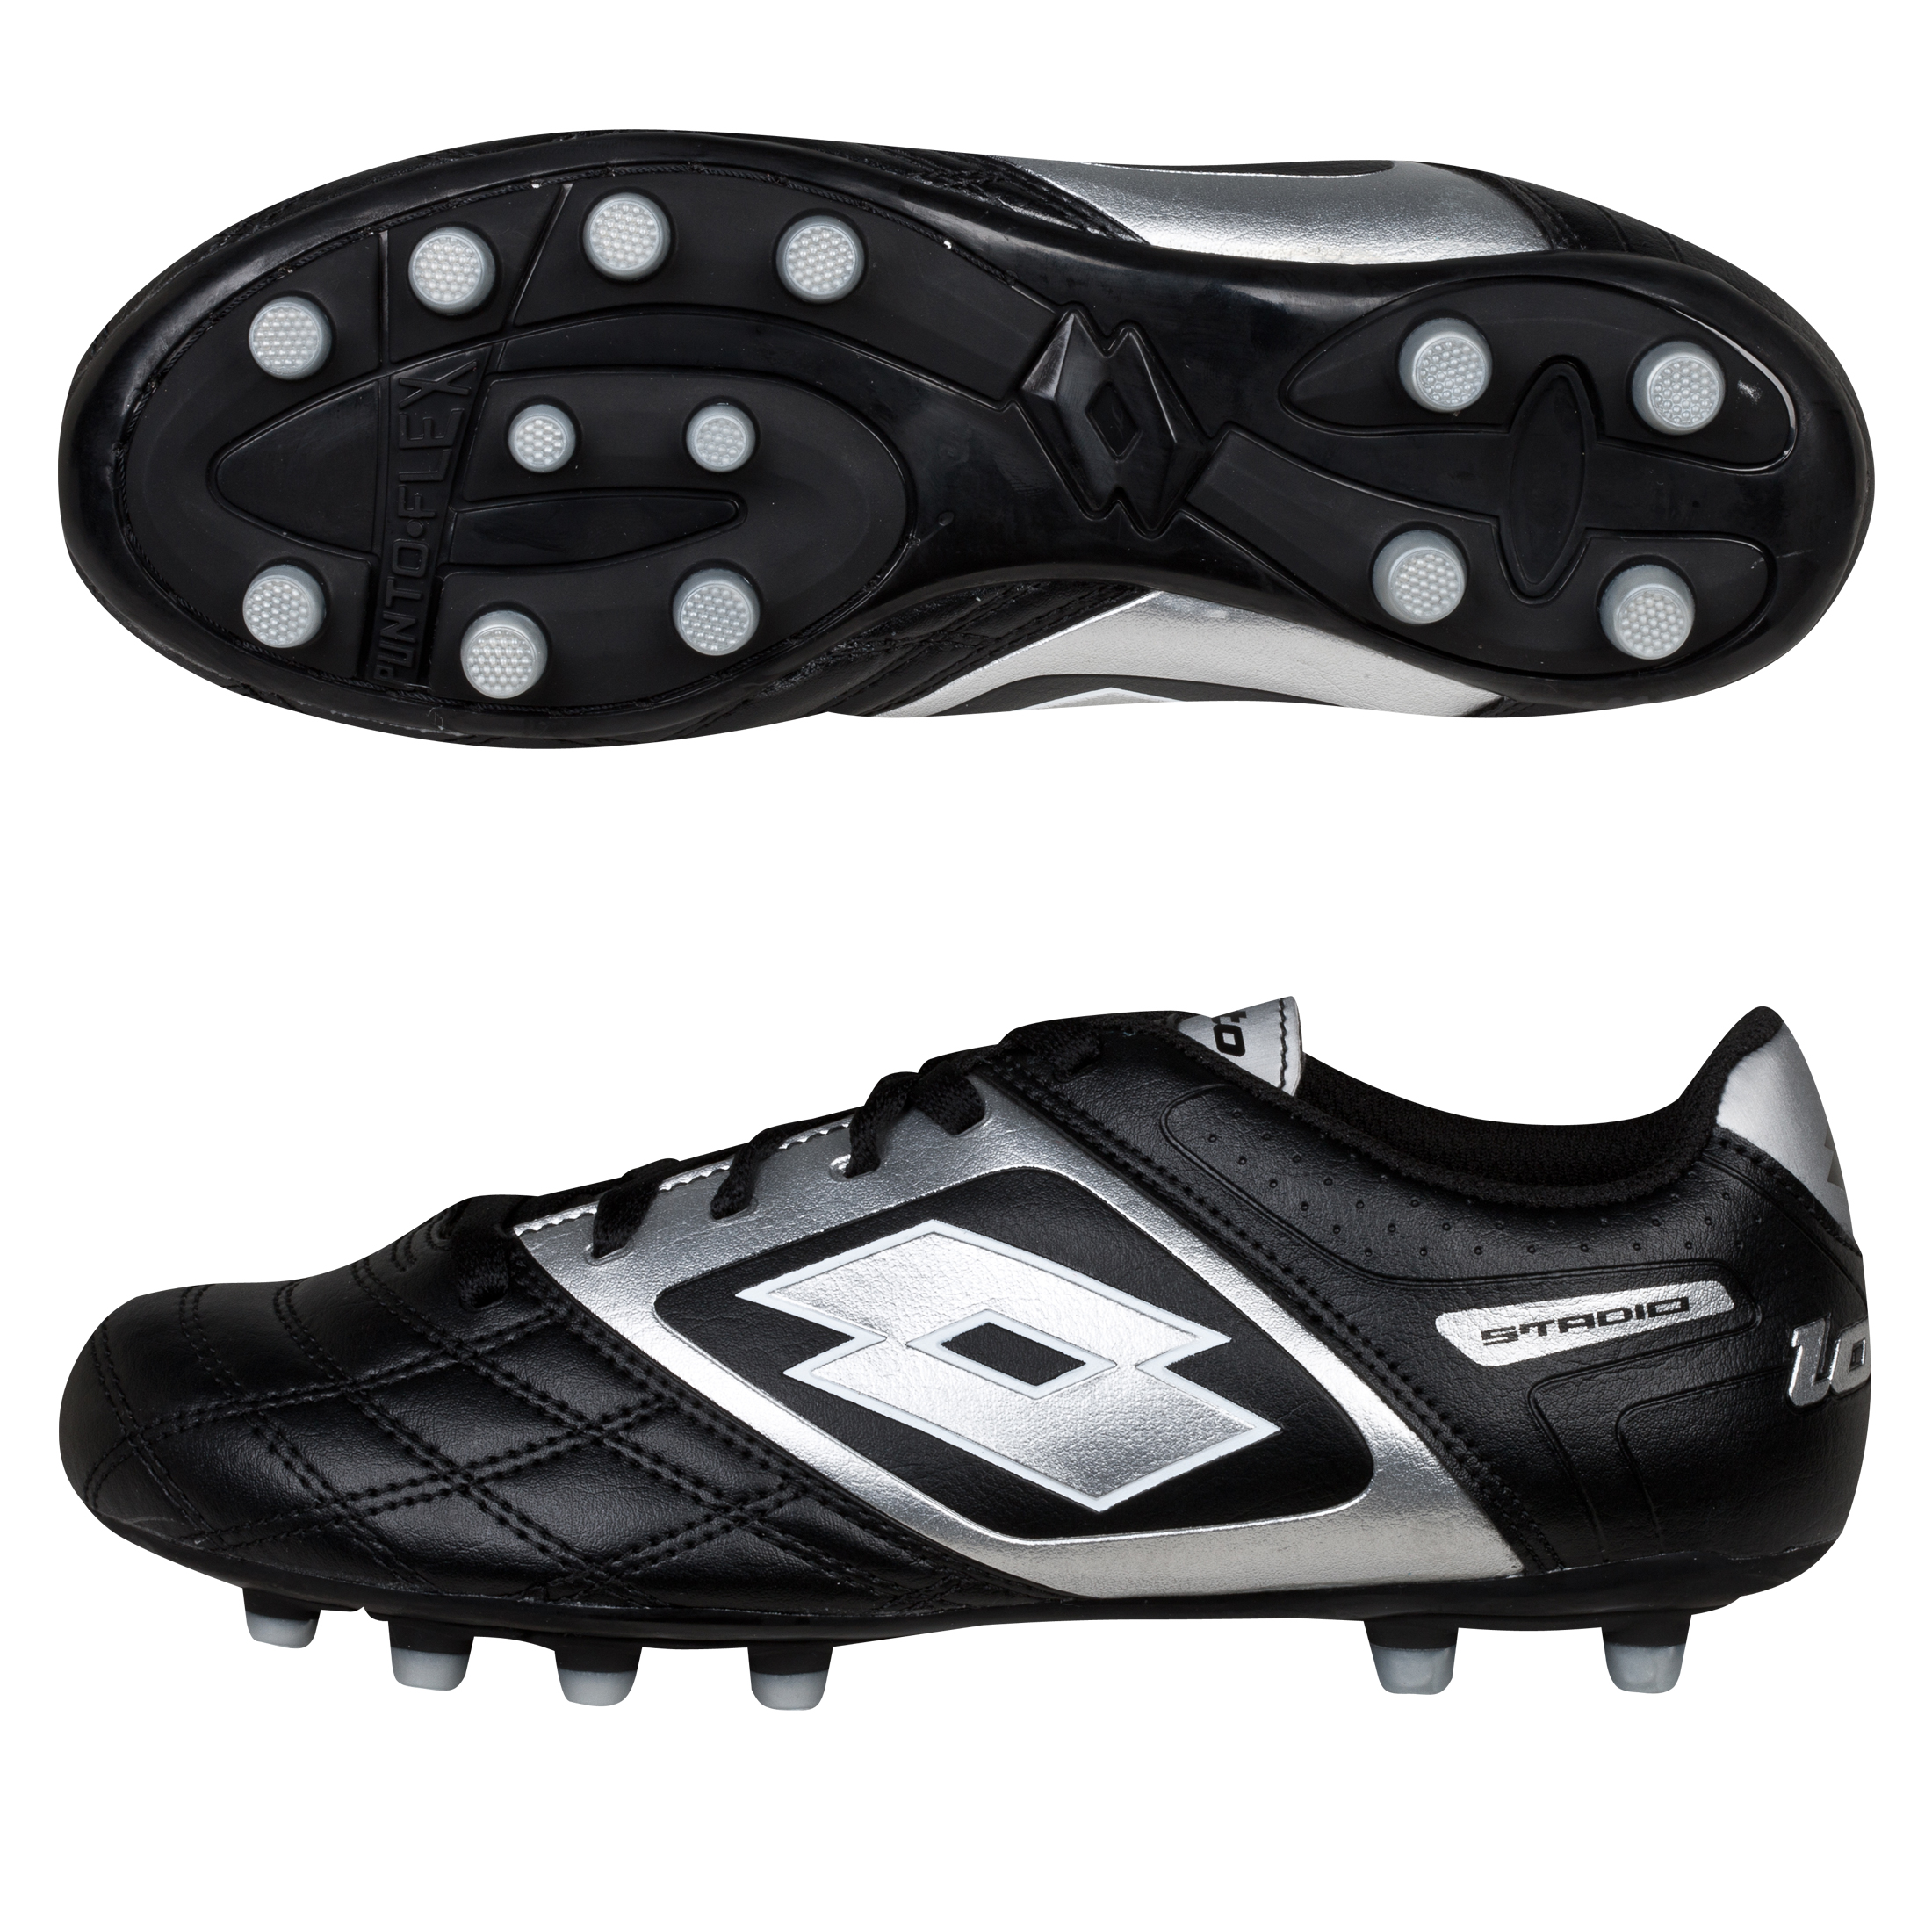 Lotto Stadio Potenza II 700 Firm Ground Football Boots - Black/Silver - Kids